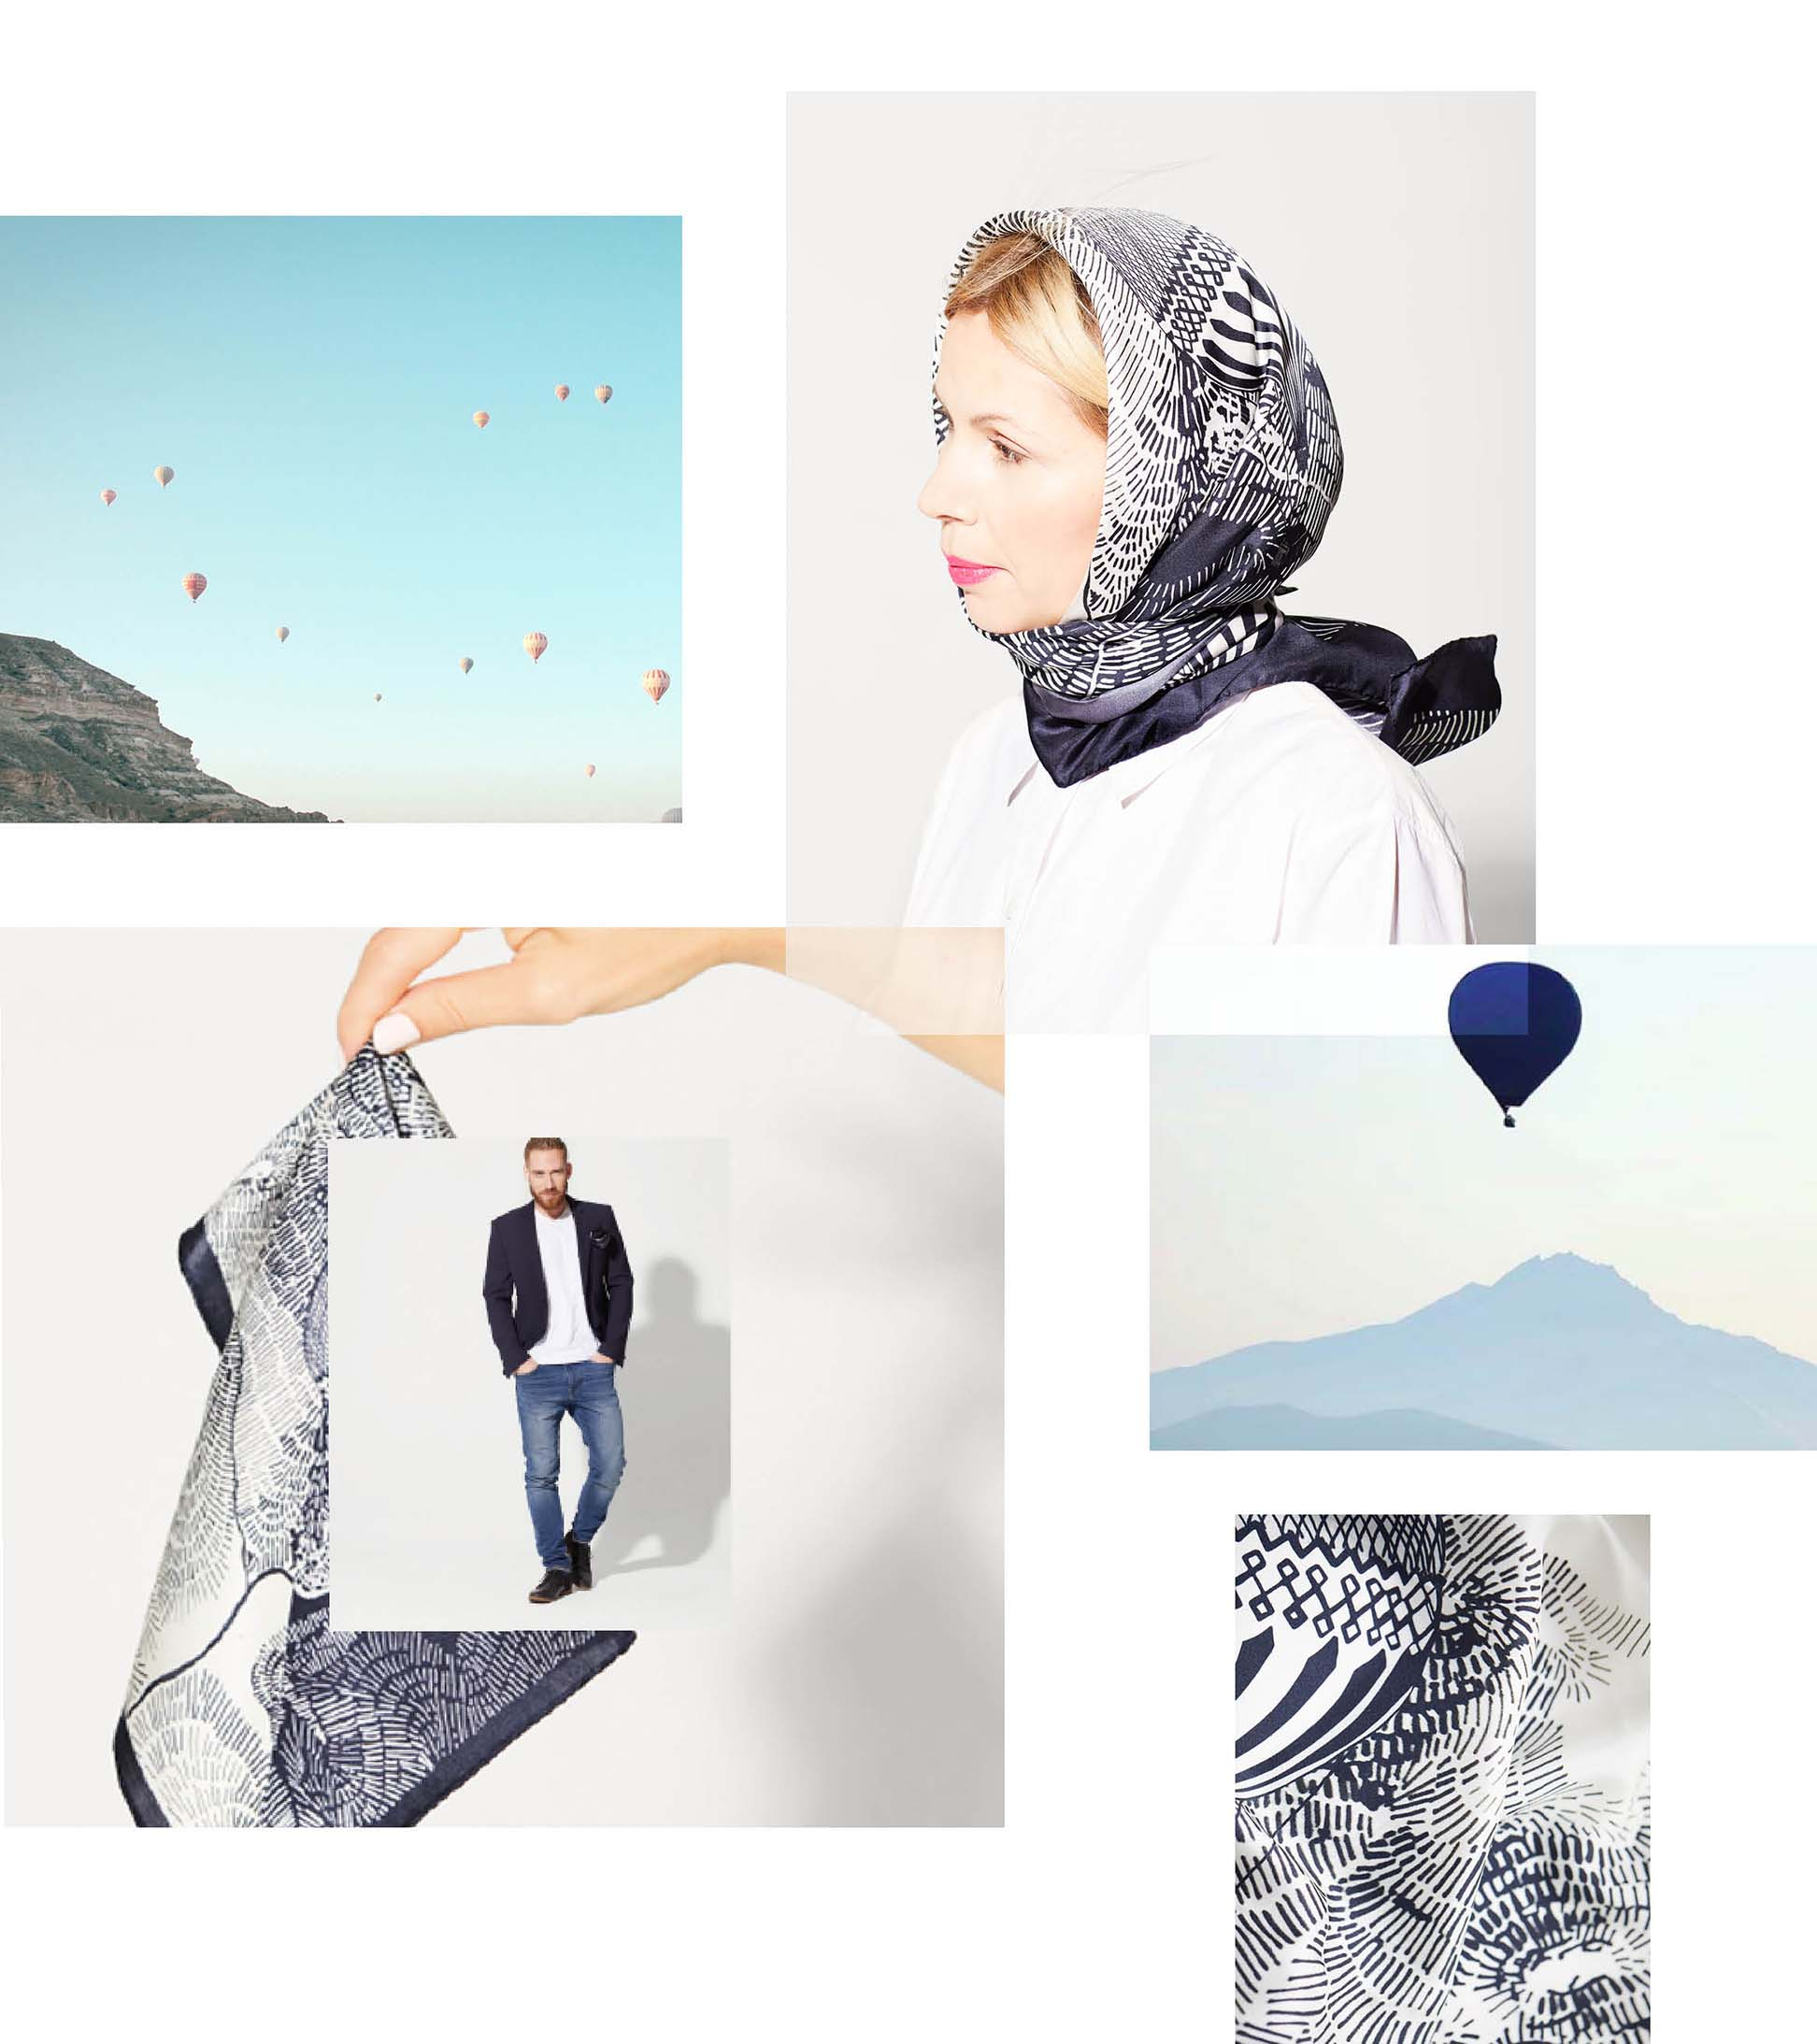 1_awol dreamer collection photo montage inspired by flying around the world looking at the sky in air balloons